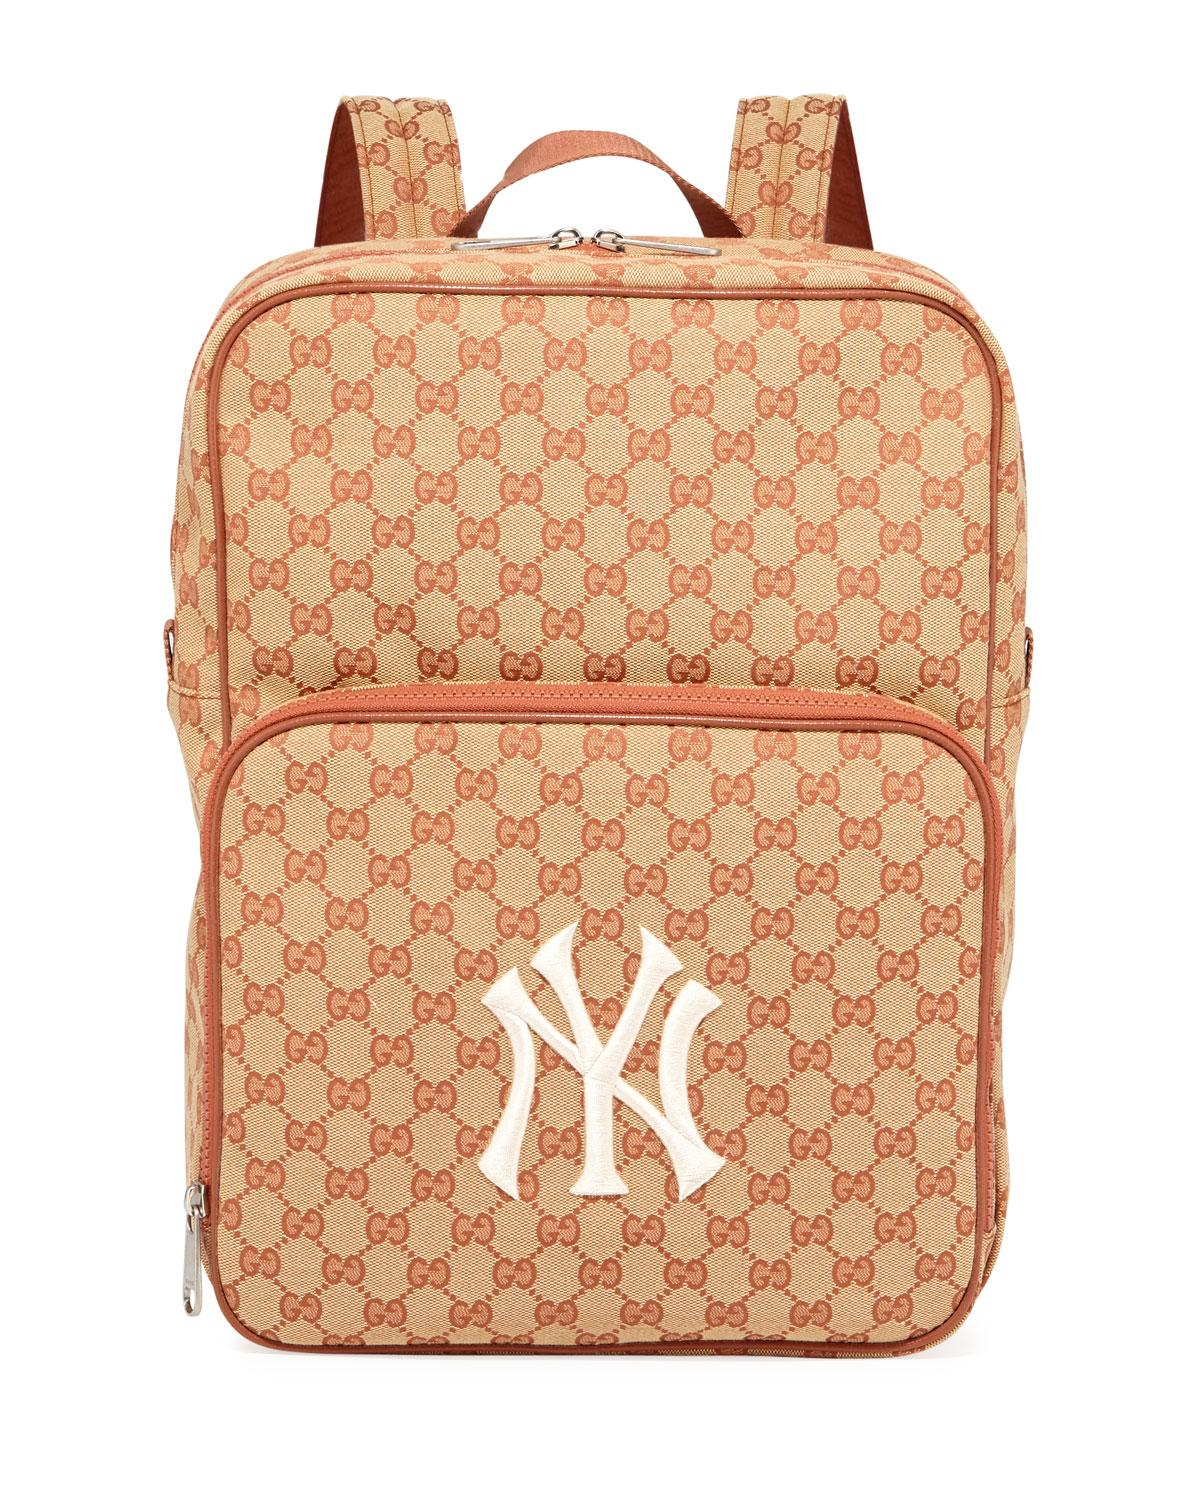 0fe56d5677e09b Gucci Men's GG Supreme Backpack With Ny Yankees Mlb Applique in ...